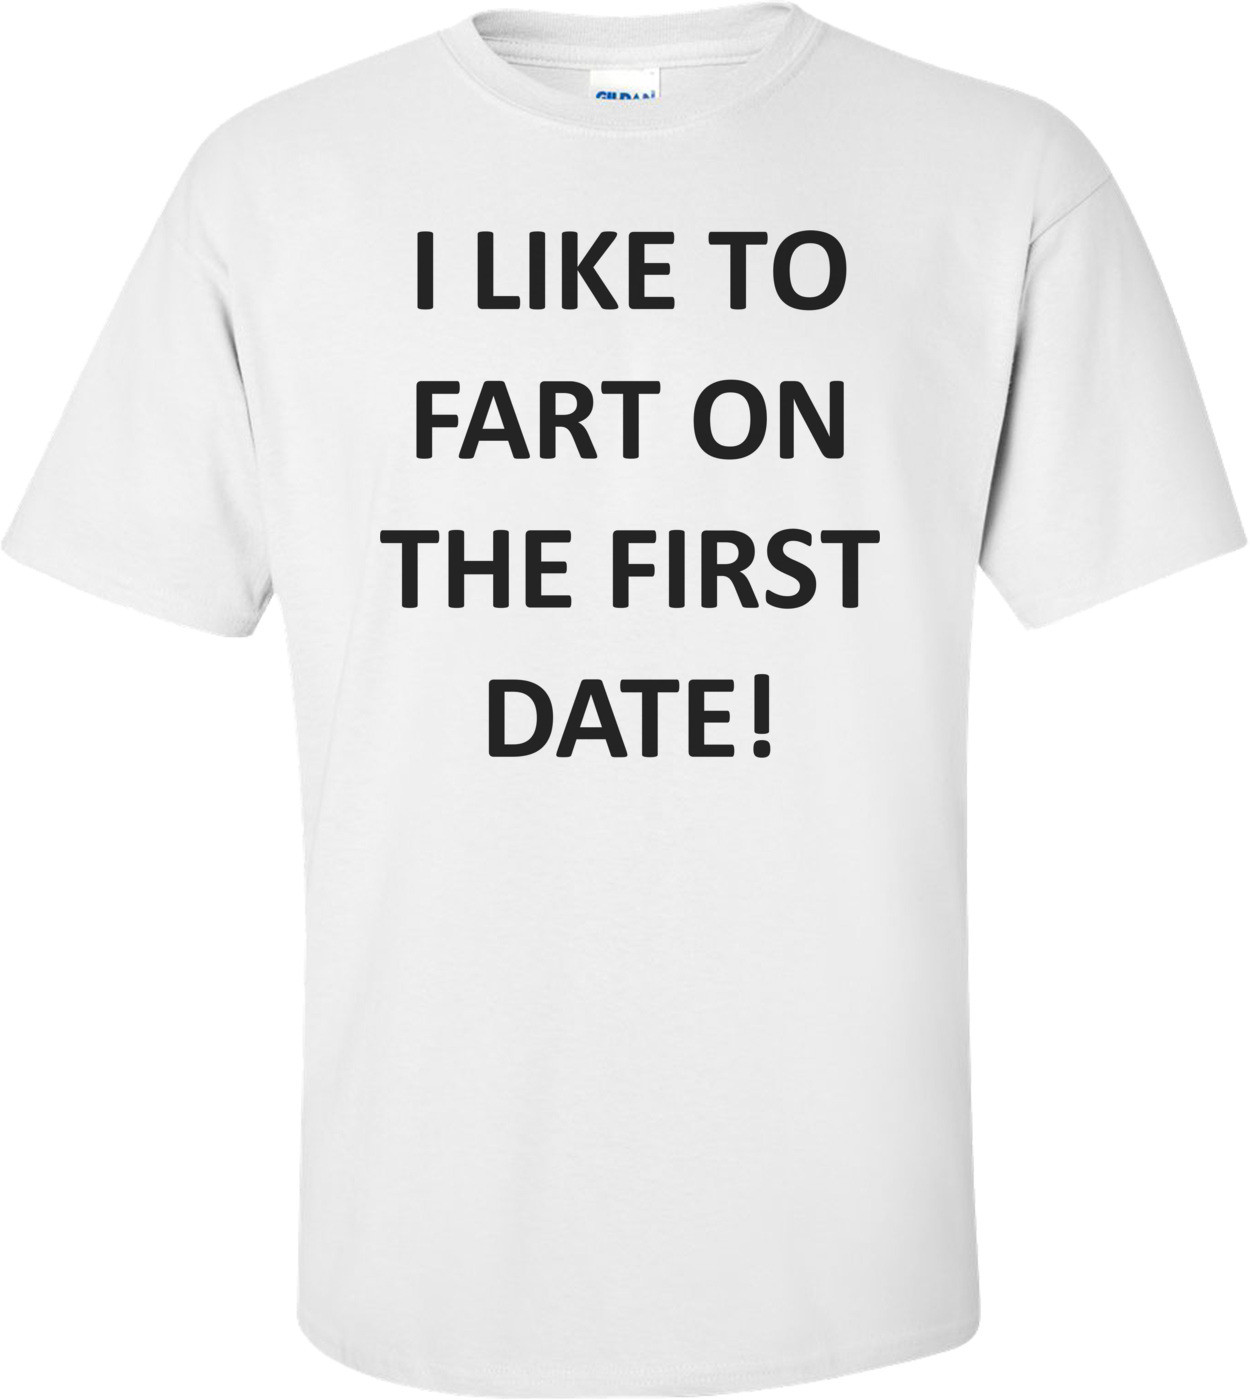 I LIKE TO FART ON THE FIRST DATE! Shirt